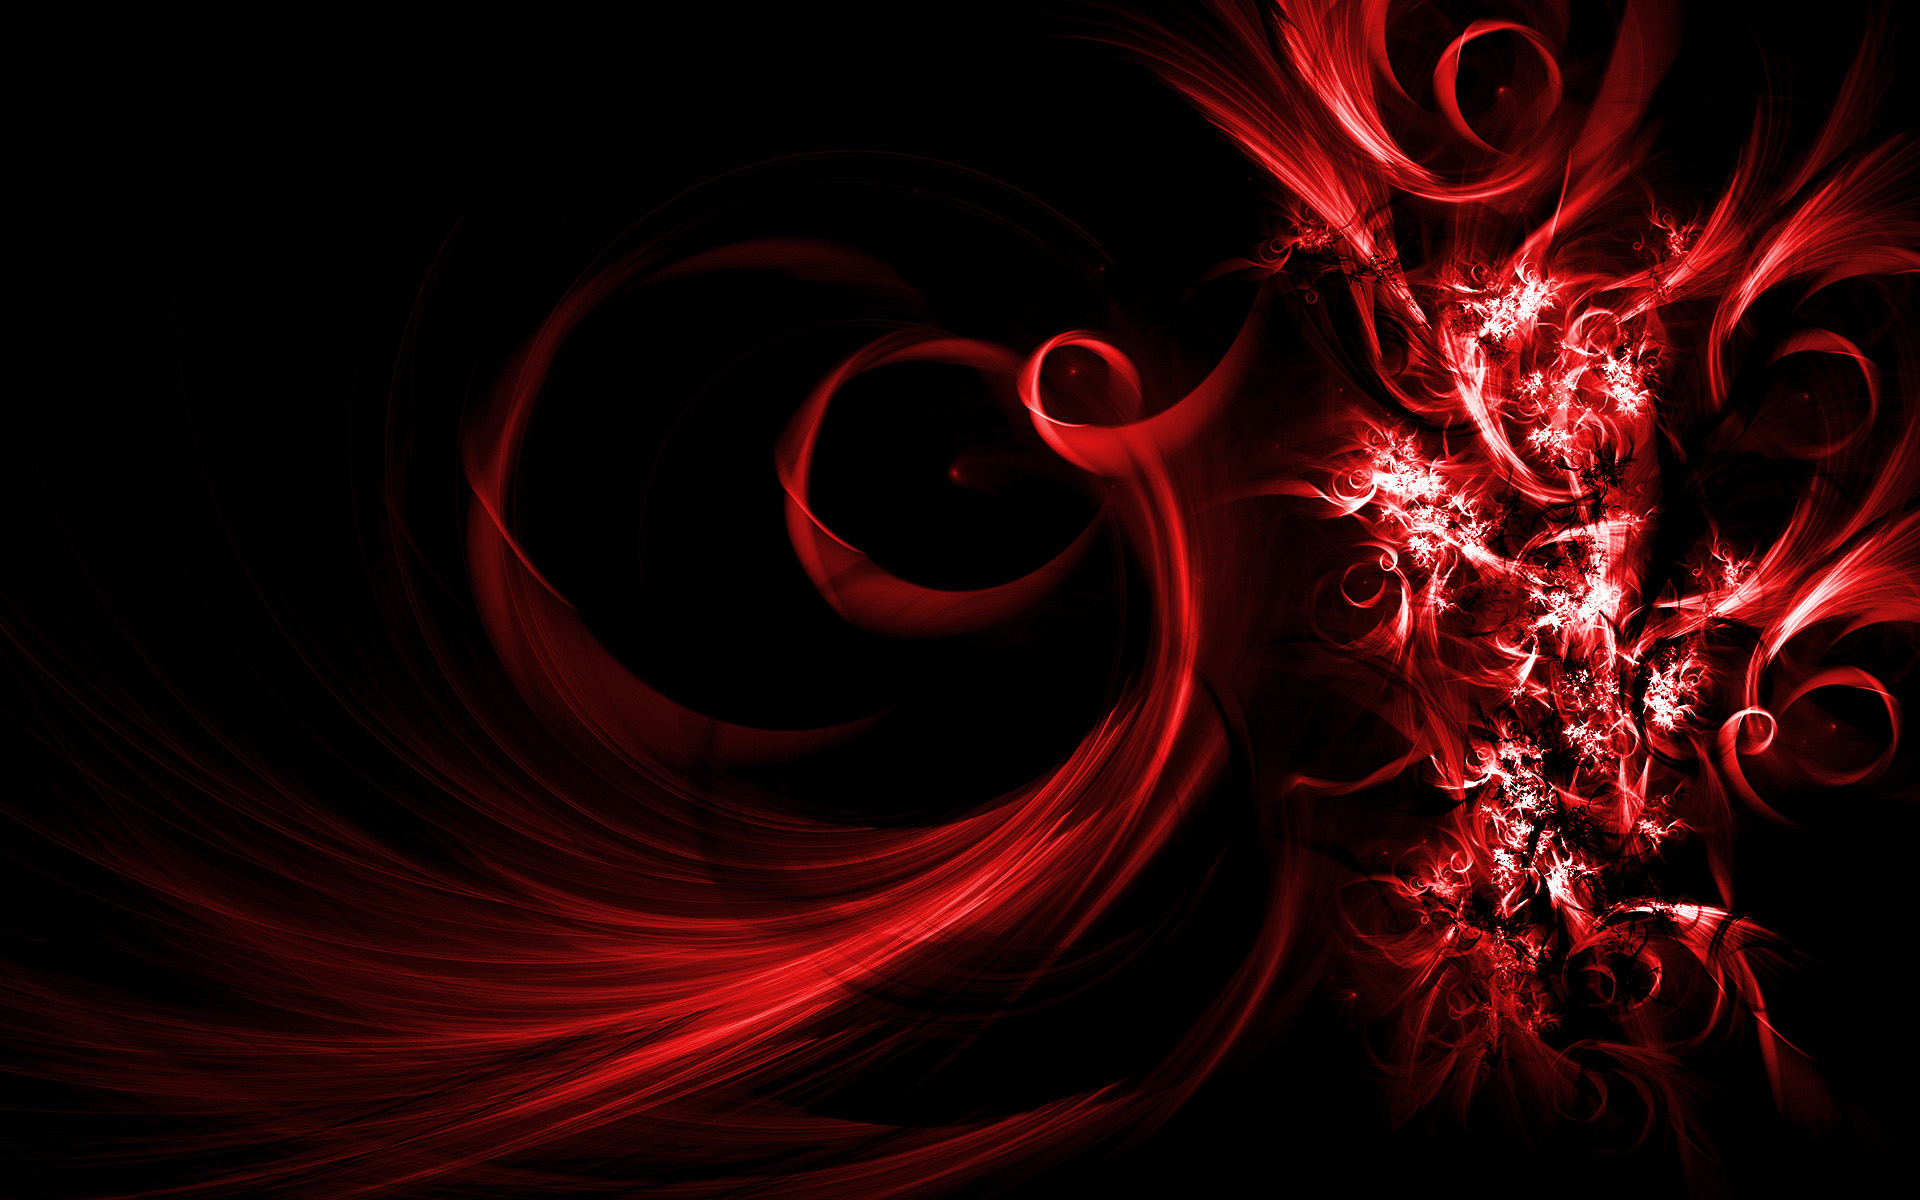 Red And Black Wallpaper Designs 12 Free Hd Wallpaper